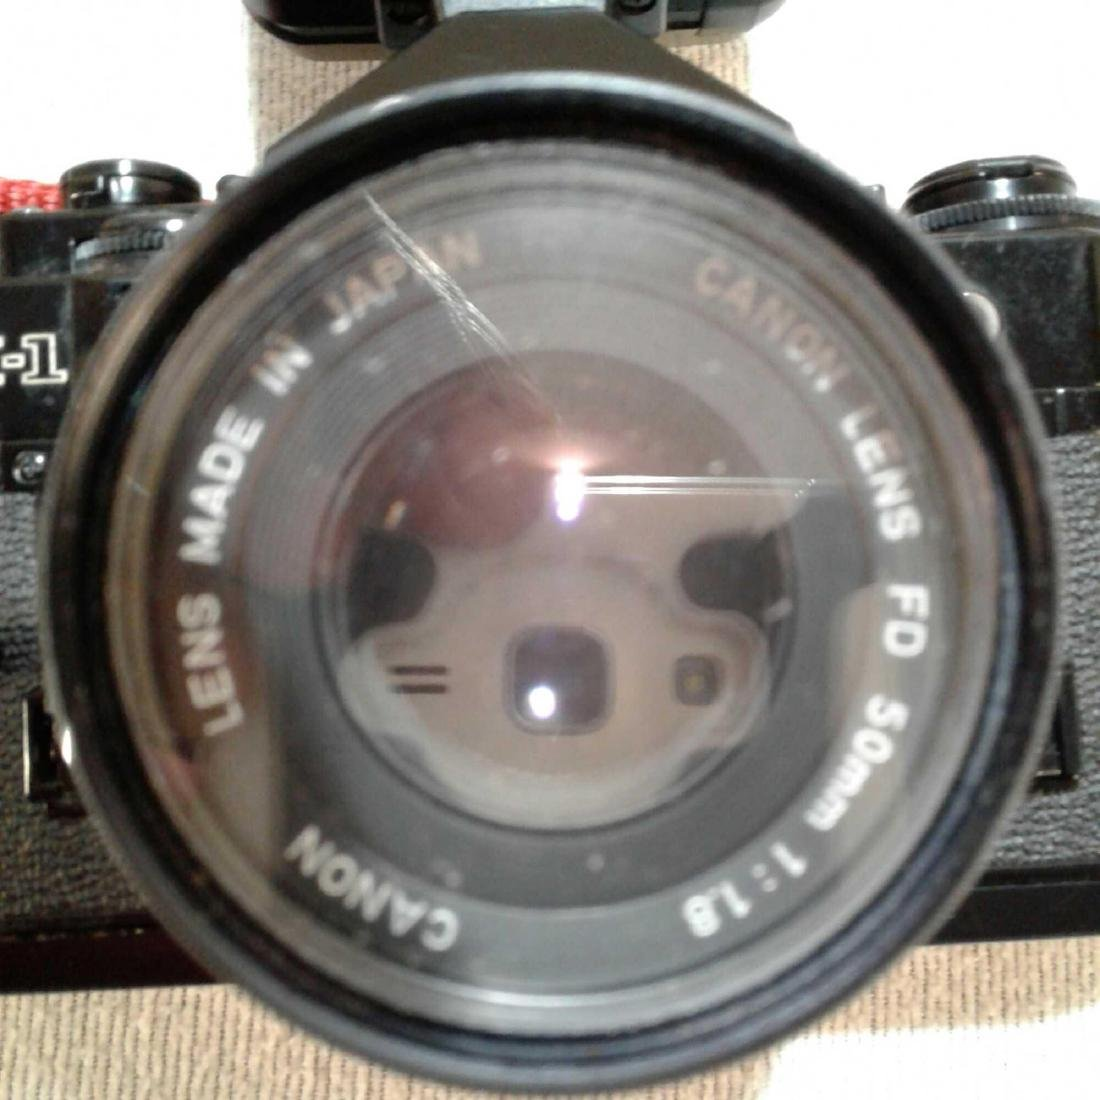 Canon A-1 35MM SLR Camera - 4